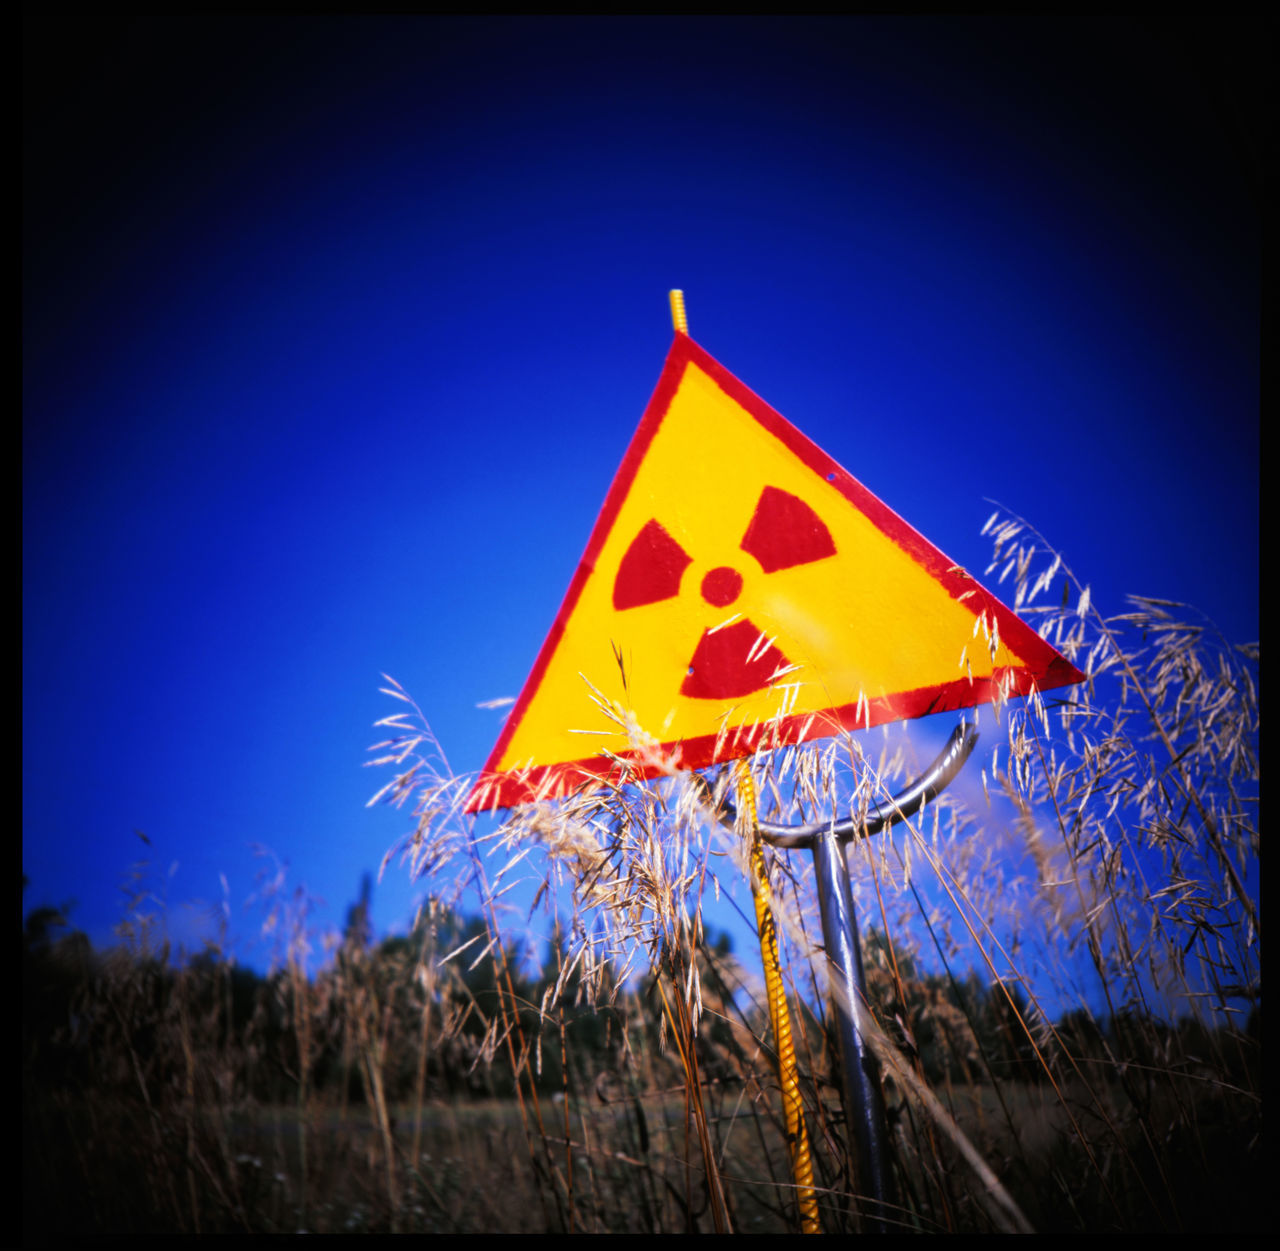 Reactor No 4 2016 Analogue Photography Catastrophy Chernobyl Chernobyl Exclusion Zone Explosion Failure  Gau Lomography Mankind Medium Format Monument Nature Nuclear Catastrophy Nuclear Power Outdoors Polution Pripyat Radioactive Reactor No.4 Sarcophagus Slidefilm Soviet Union Technology Ukraine